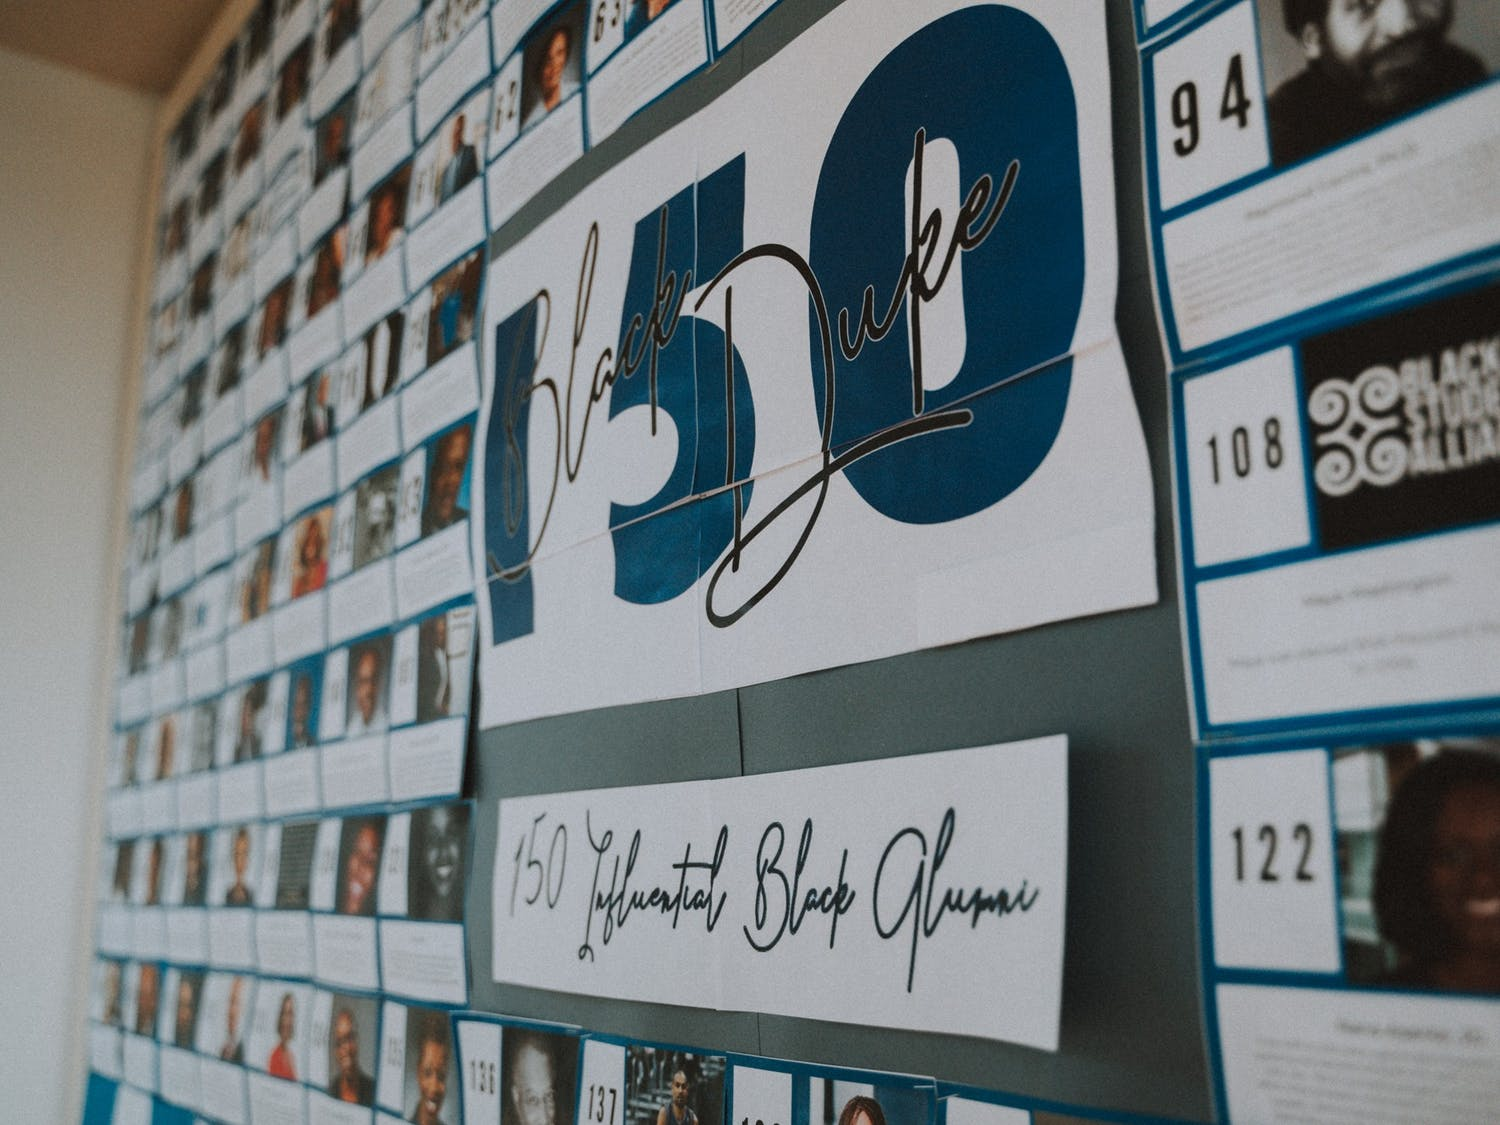 A display board with 150 influential Black Duke Alumni can be found on the first floor of the Flowers Building.